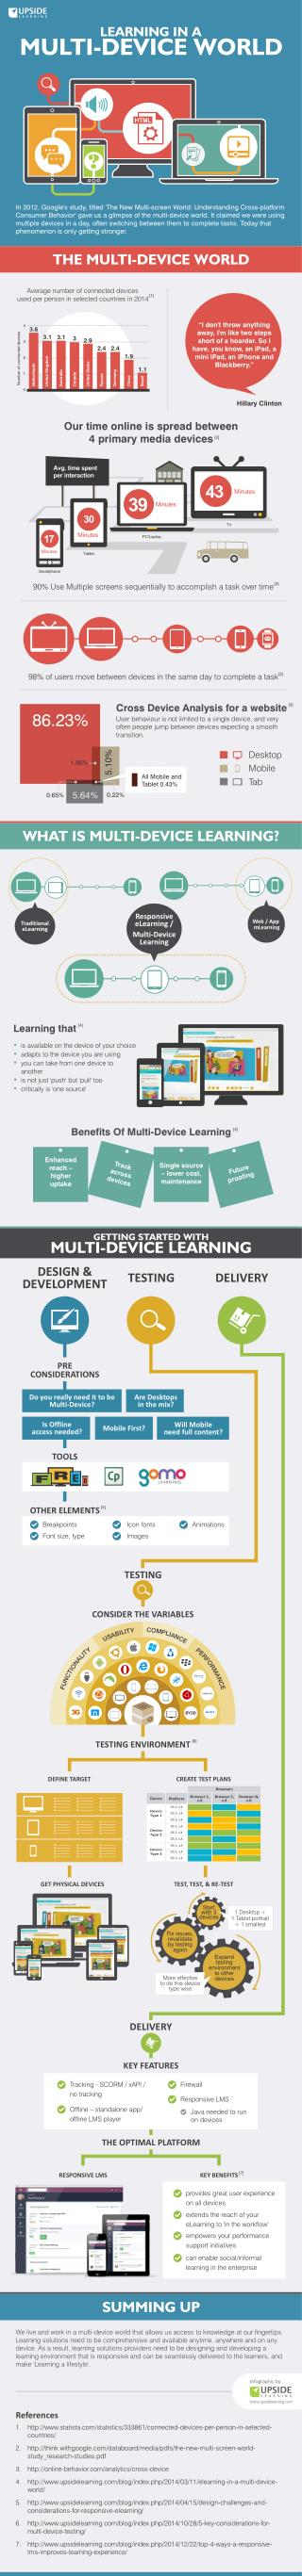 Learning in a Multi-device World